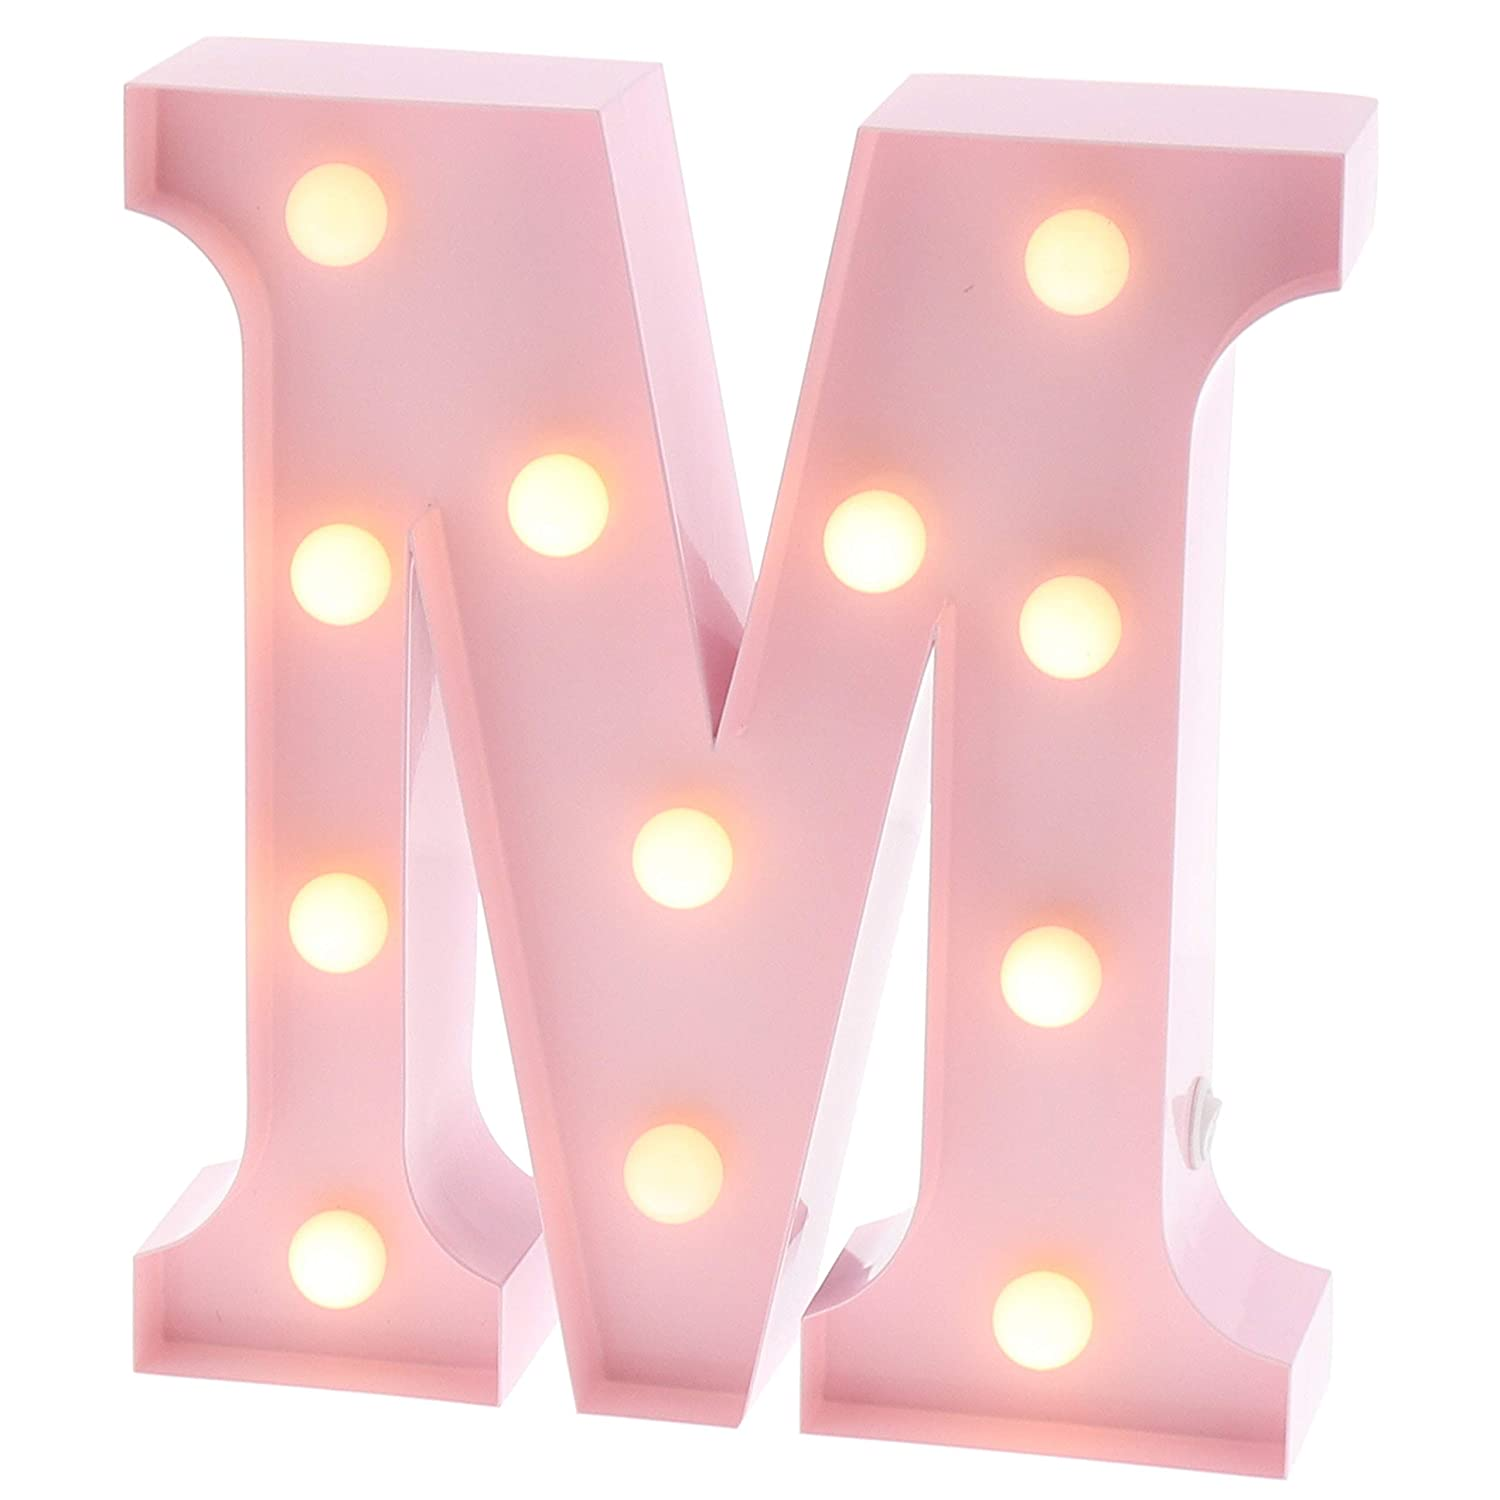 "Barnyard Designs Metal Marquee Letter M Light Up Wall Initial Nursery Letter, Home and Event Decoration 9"" (Baby Pink)"